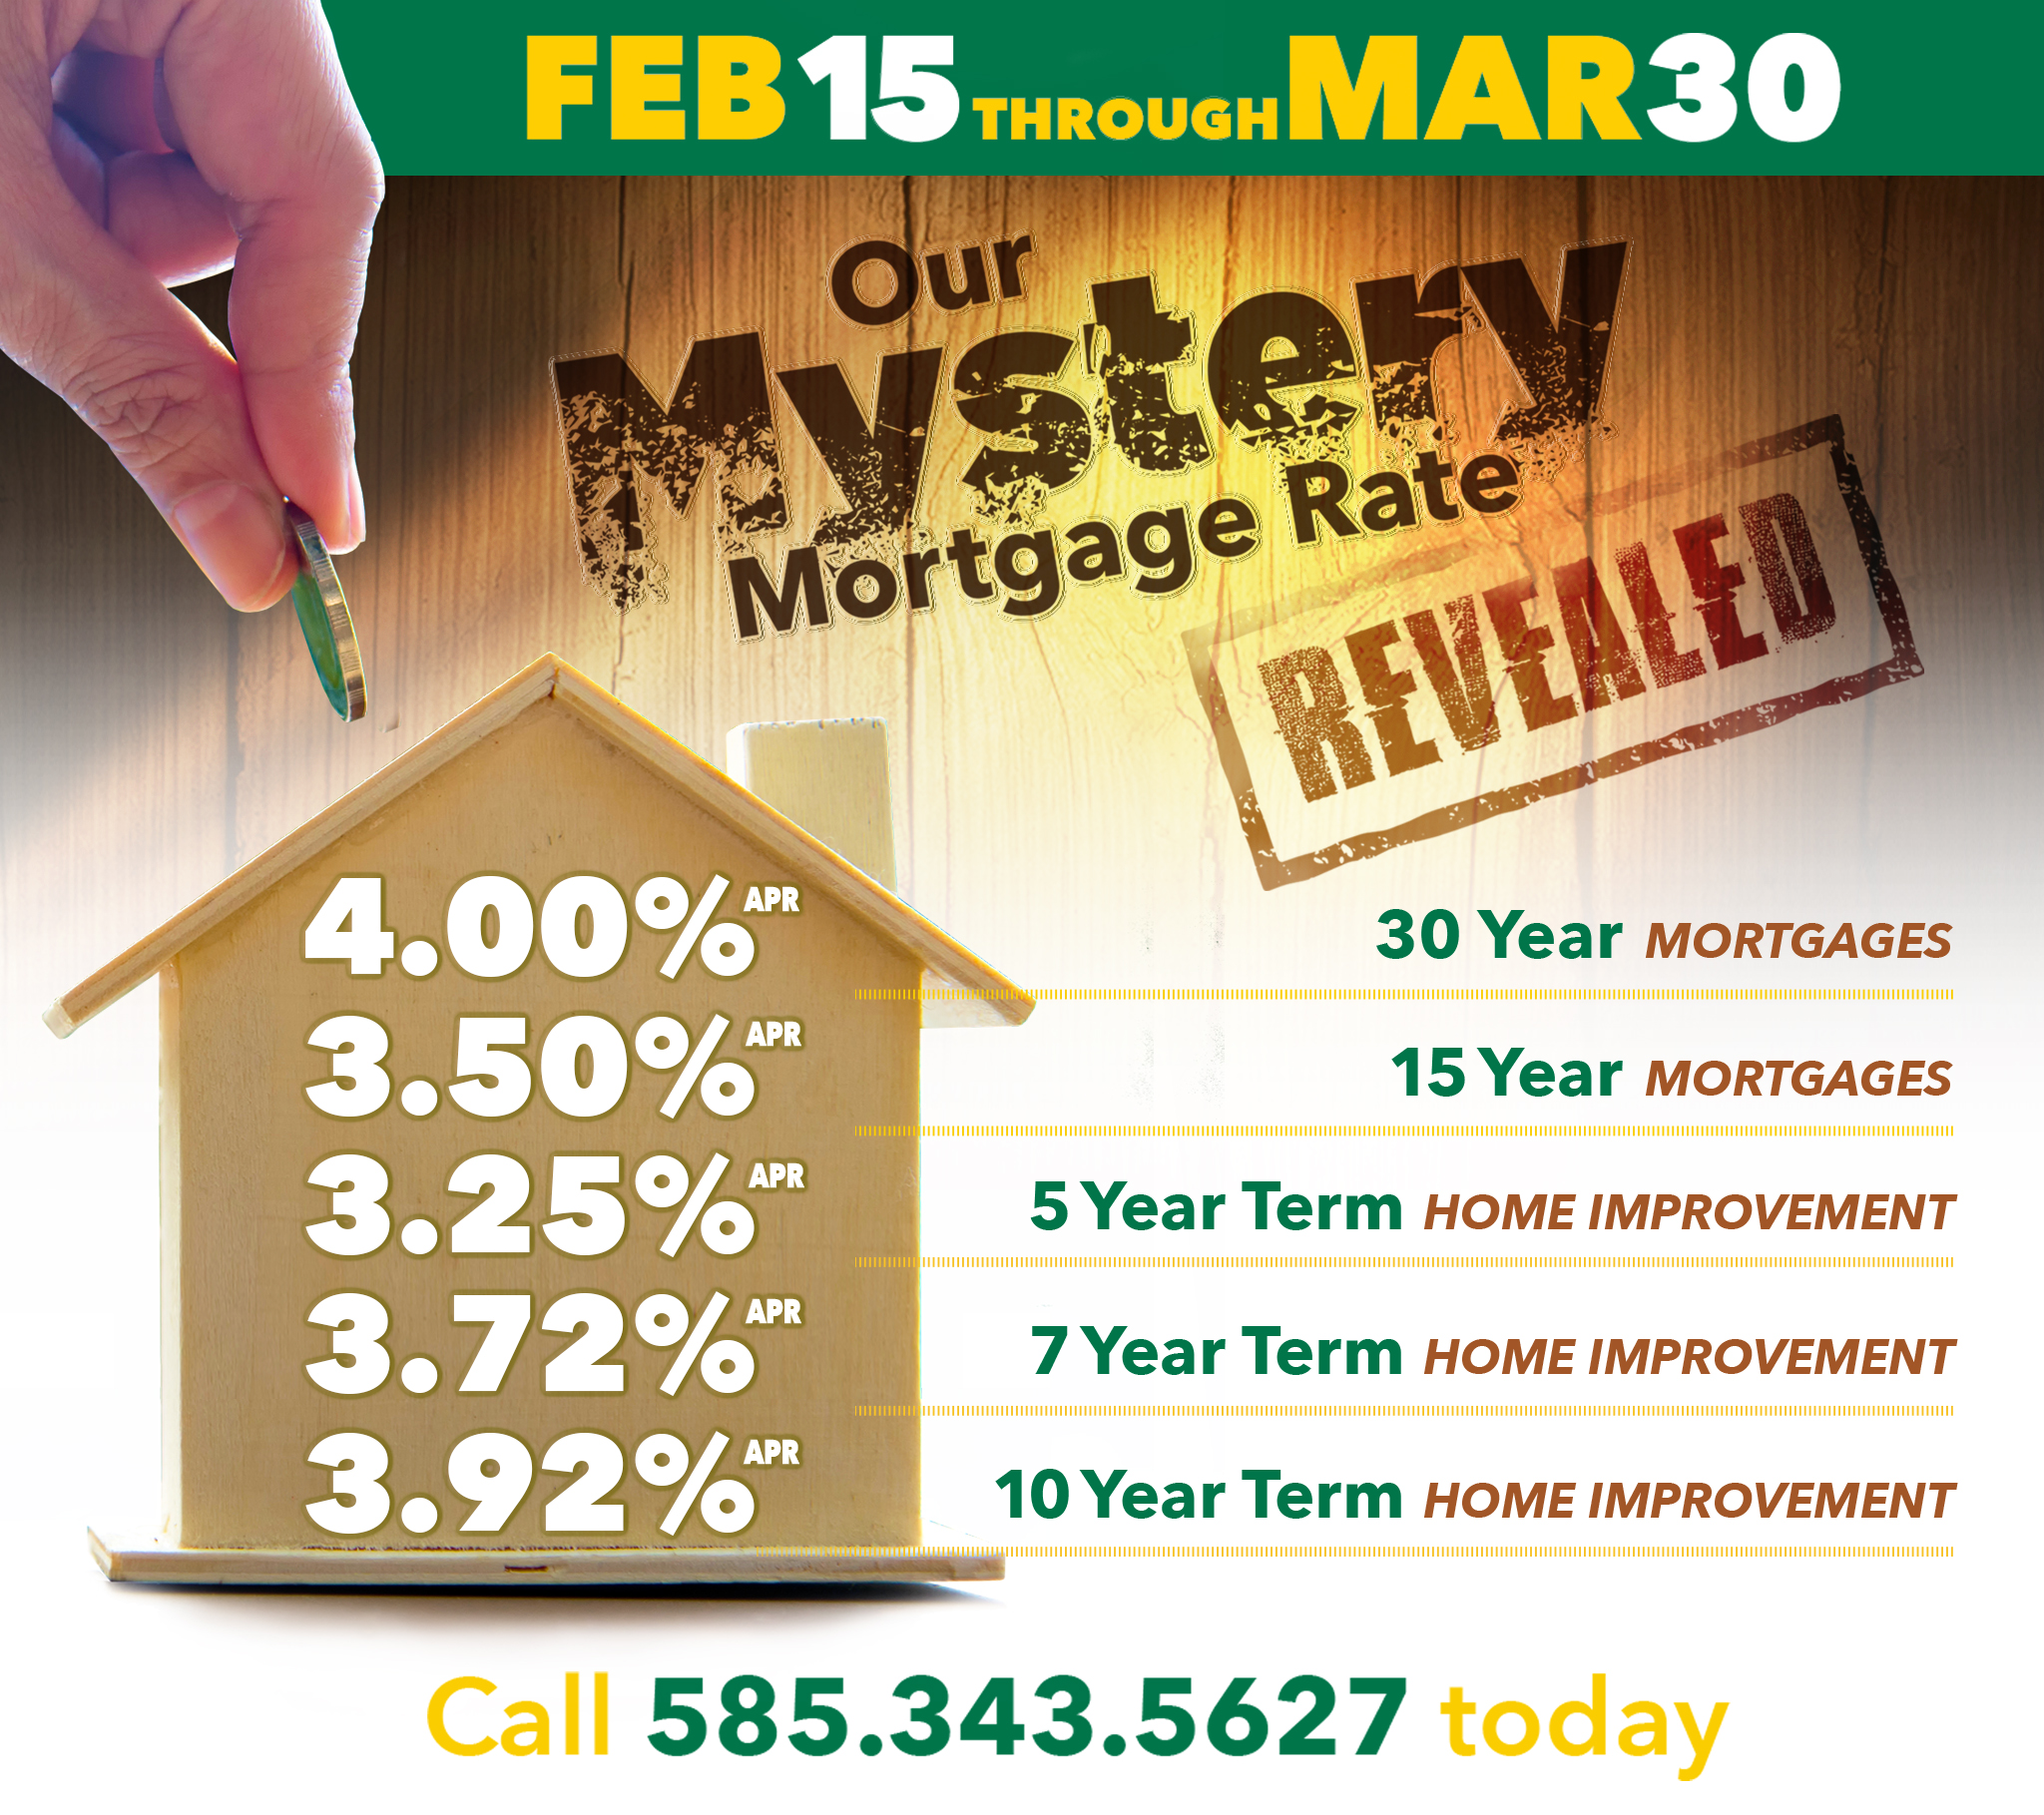 TVFCU_28159_Inquiring_Minds_Mortgage_hero_3